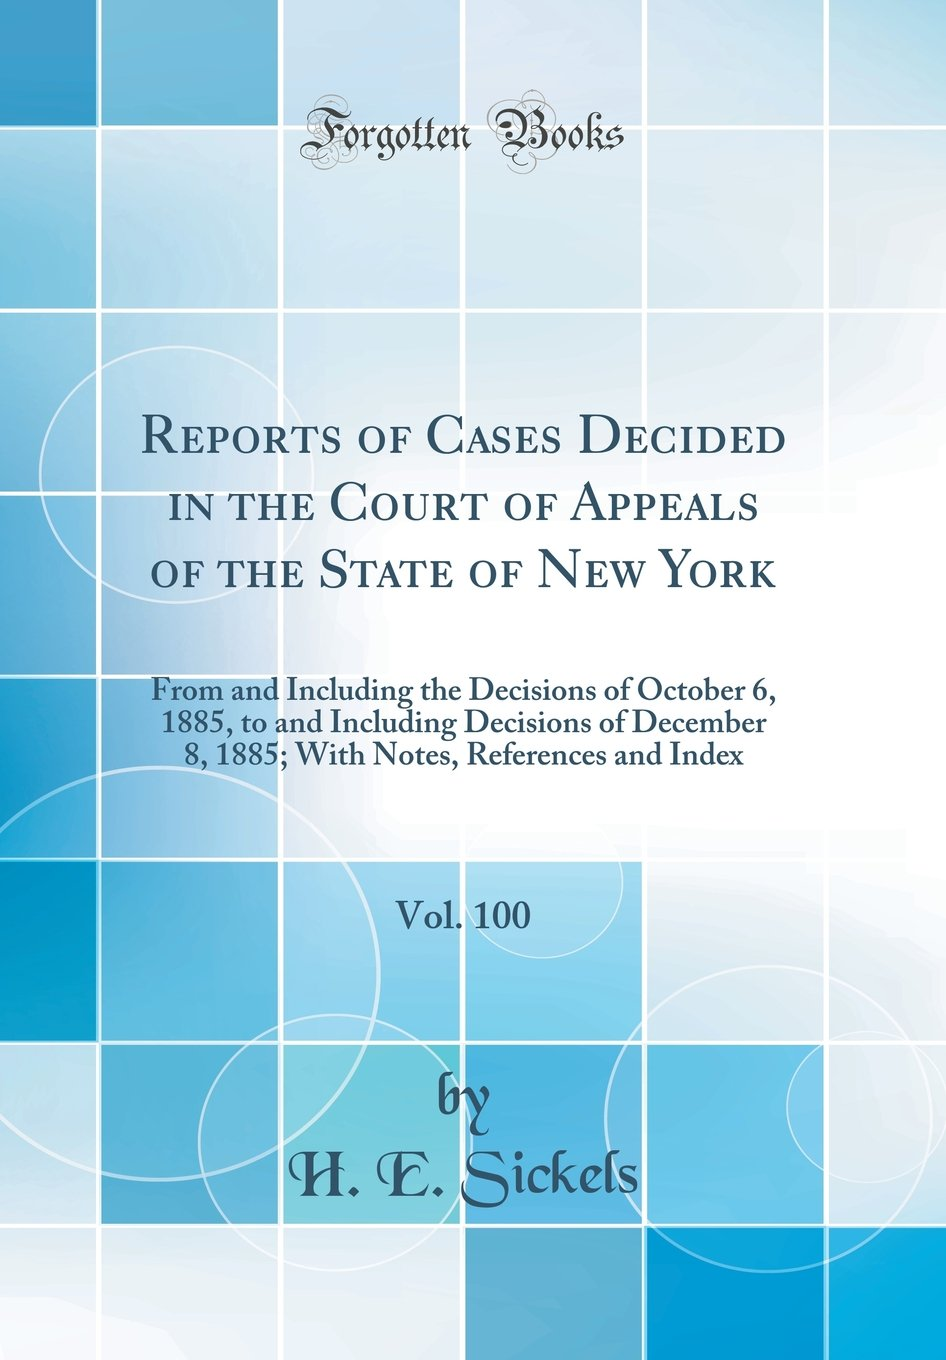 Download Reports of Cases Decided in the Court of Appeals of the State of New York, Vol. 100: From and Including the Decisions of October 6, 1885, to and ... Notes, References and Index (Classic Reprint) pdf epub